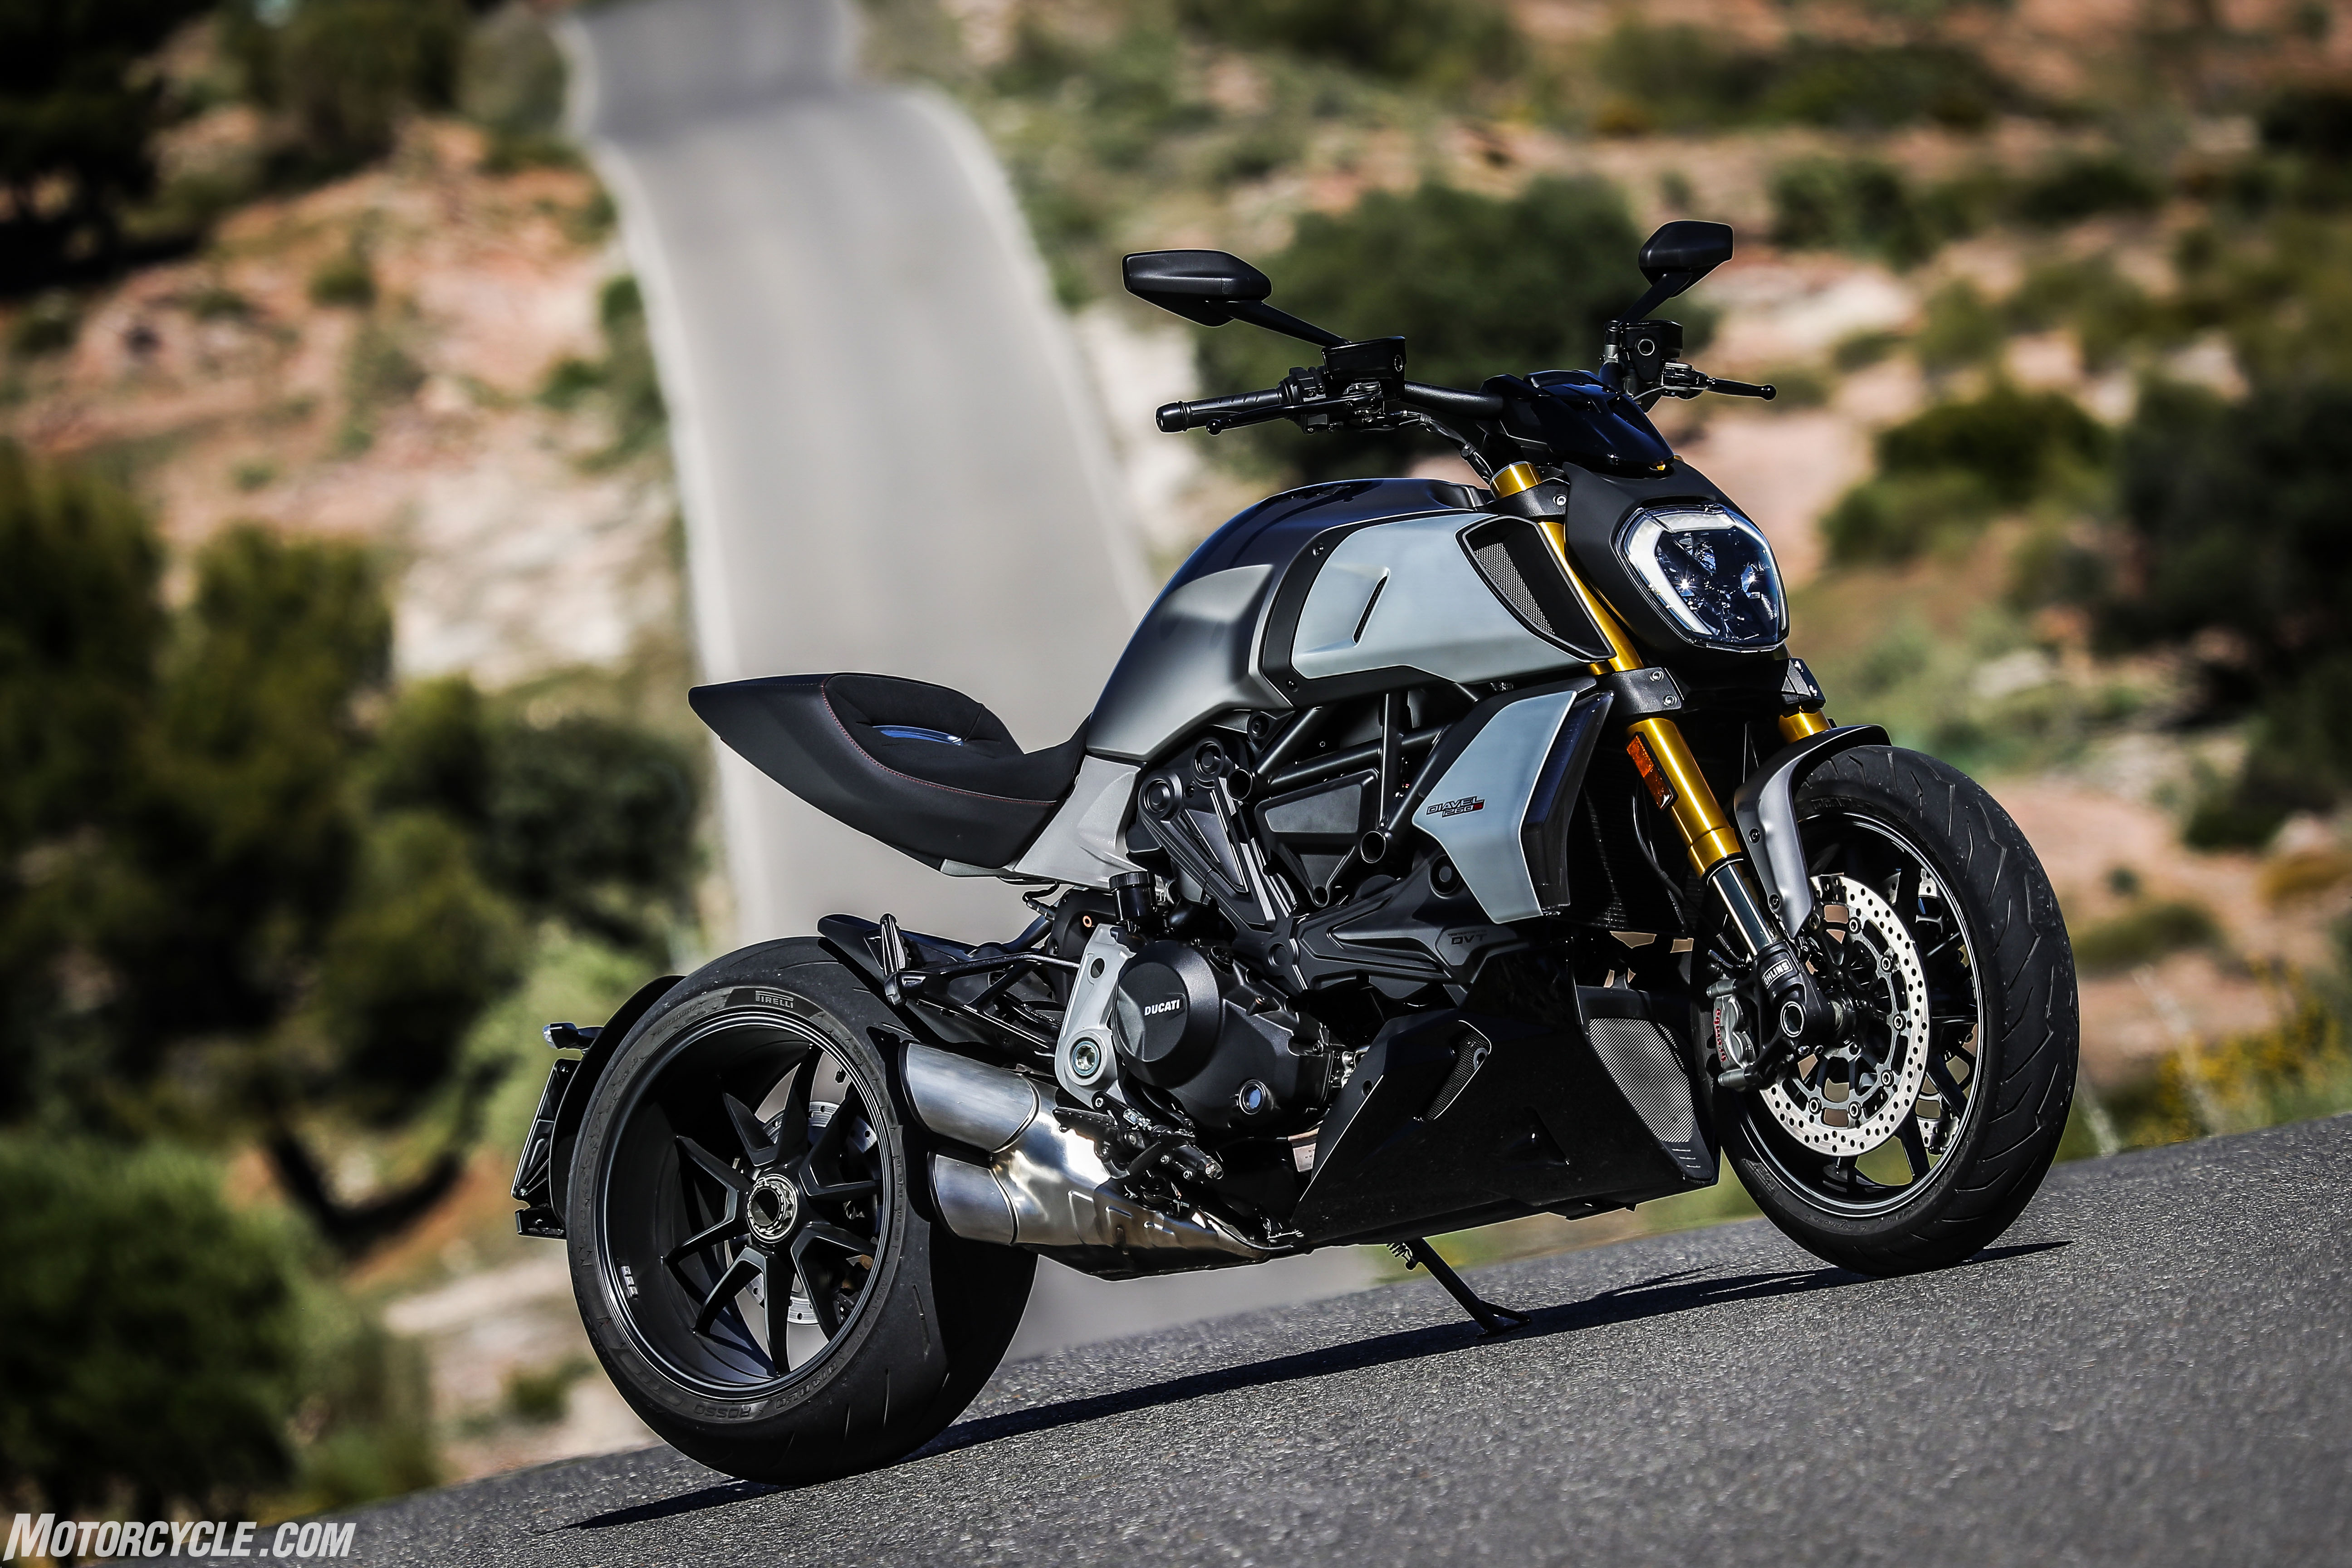 FIRST RIDE: 2019 Ducati Diavel 1260S - looks like a